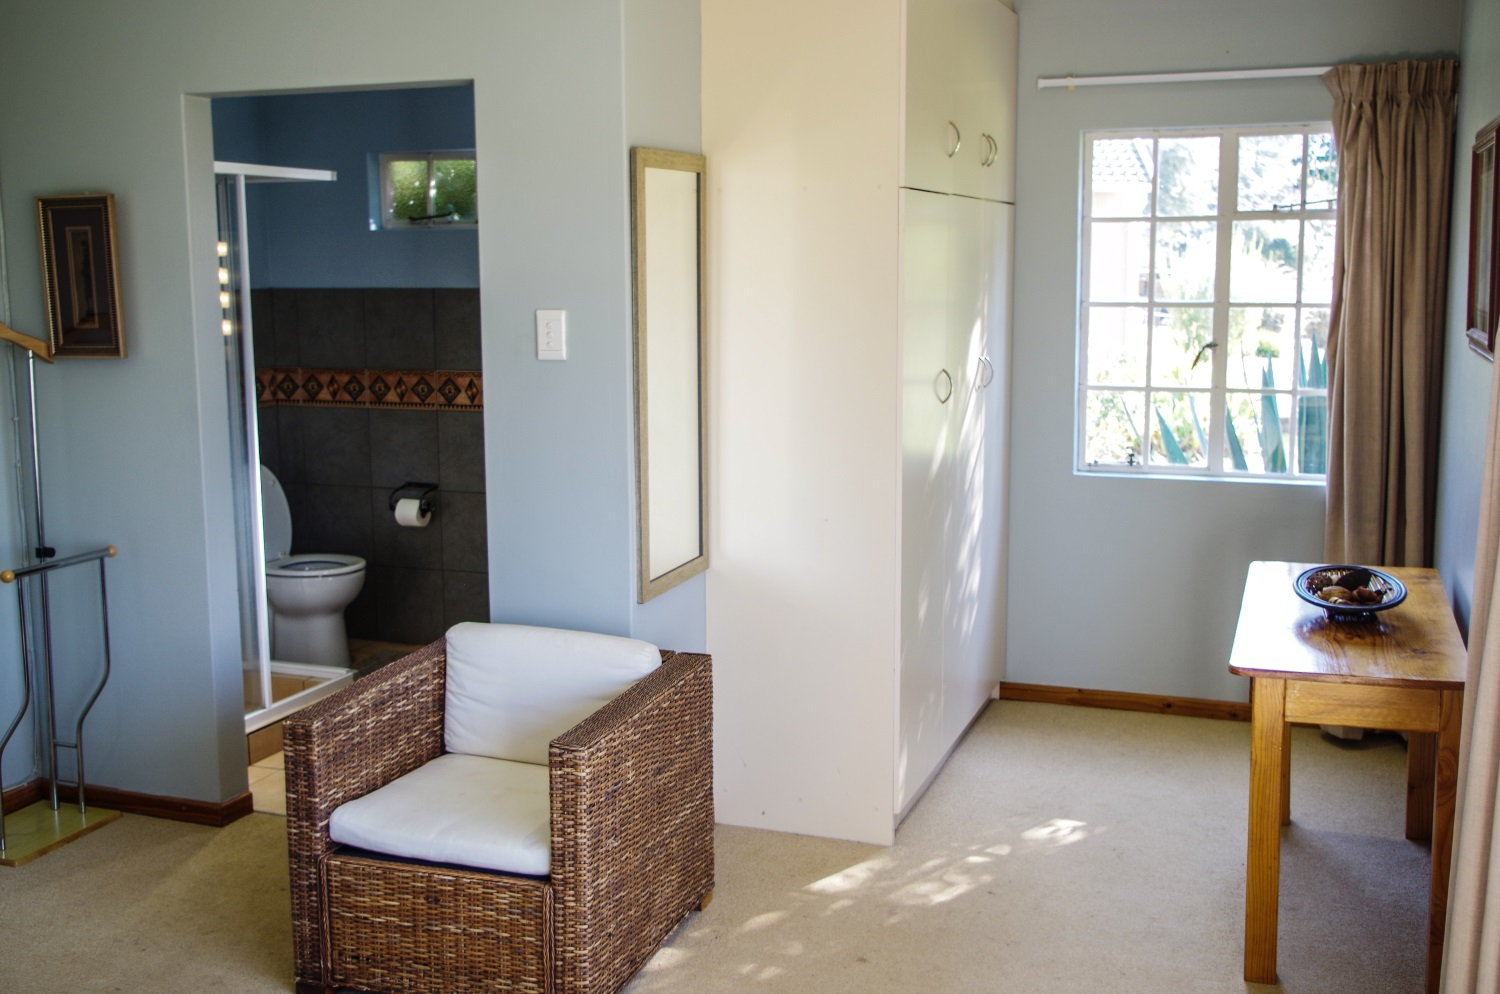 The Manderson Hotel la themba en suite